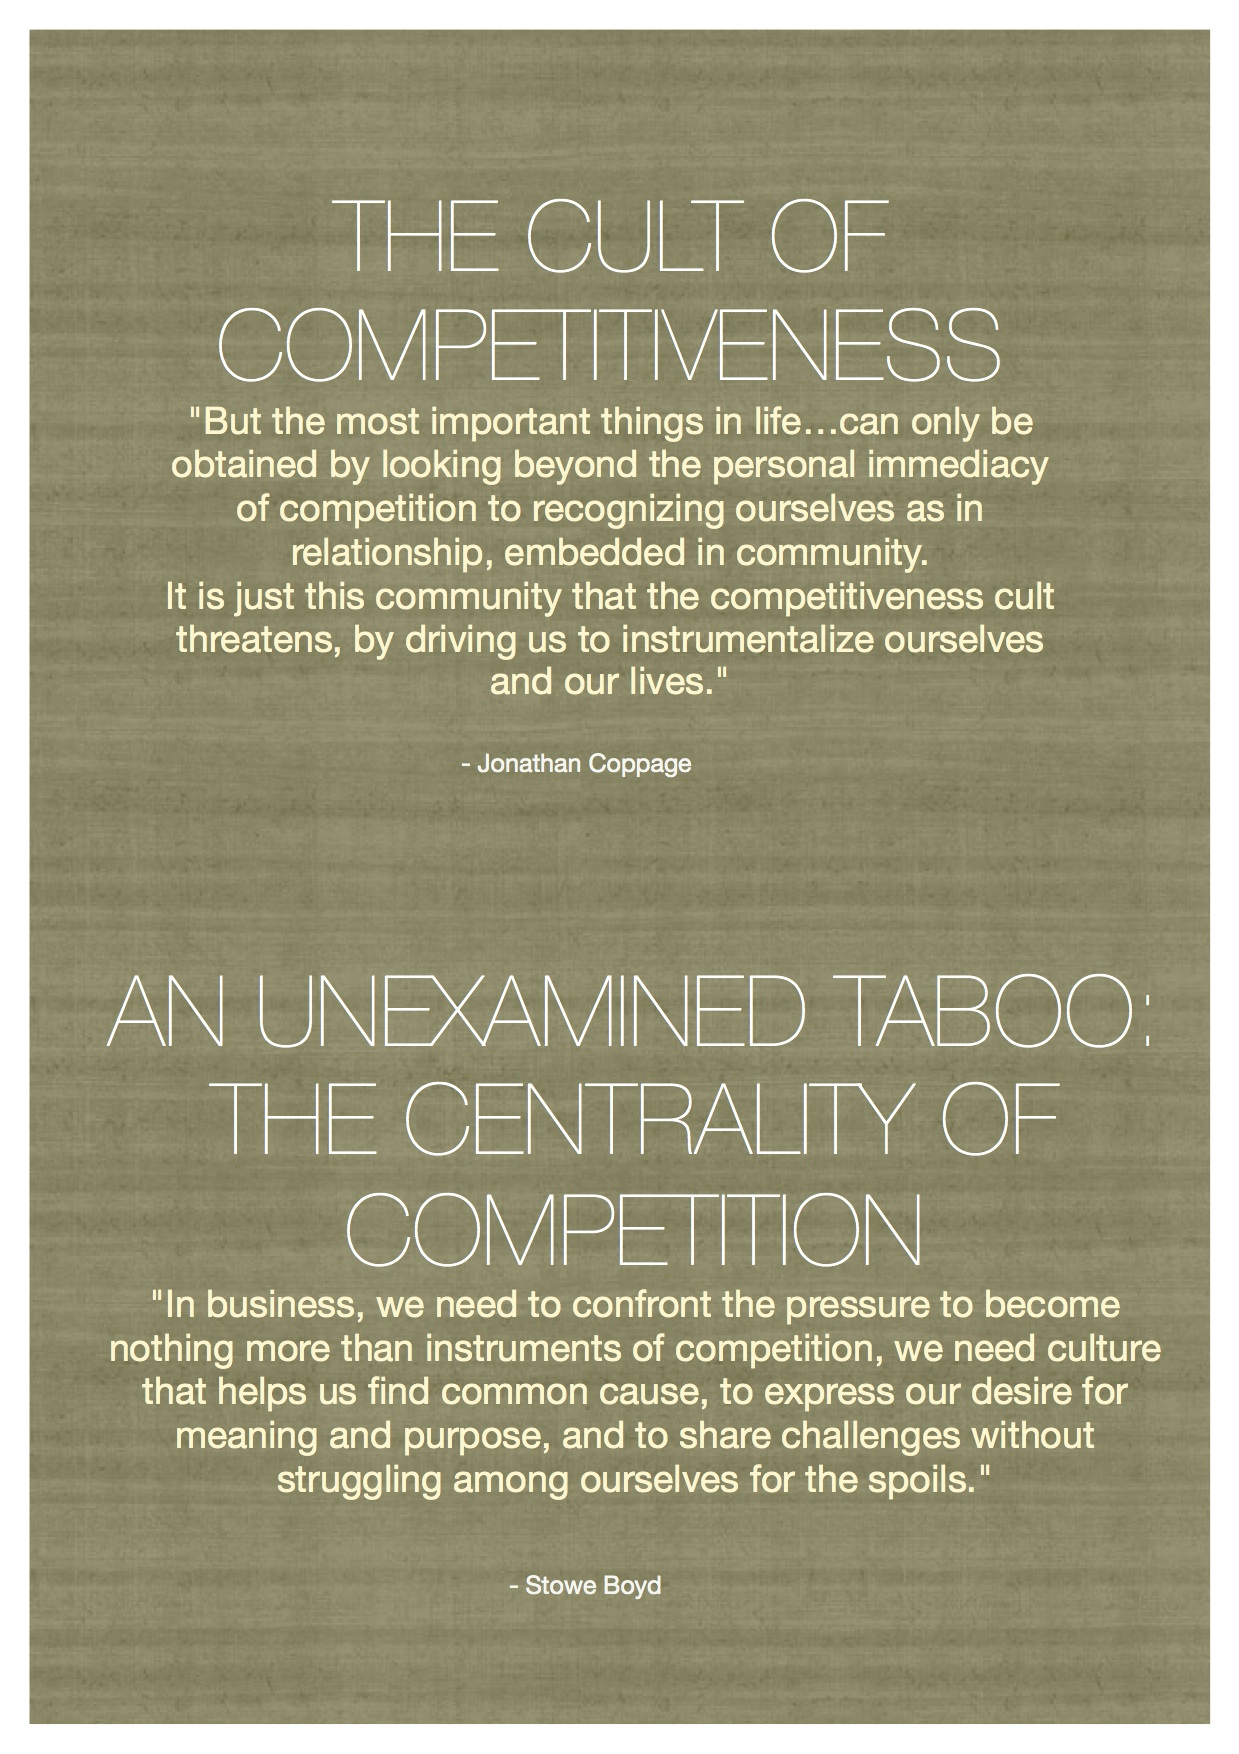 The Cult of Competitiveness